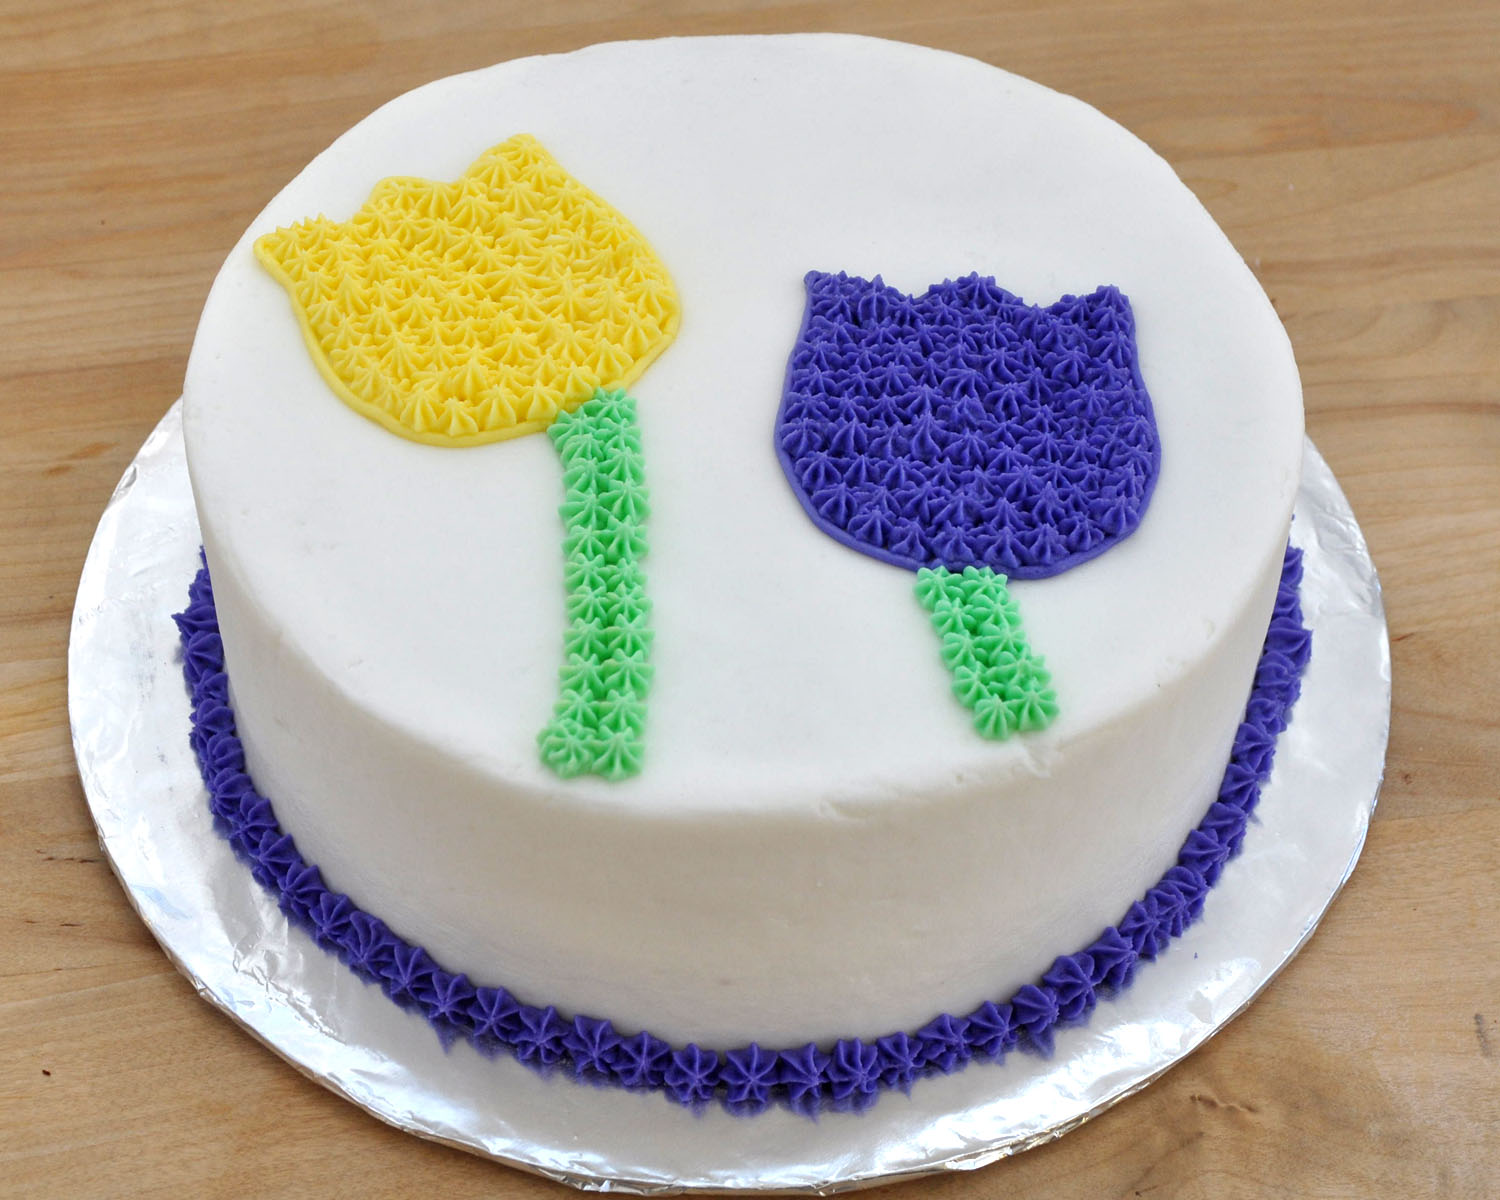 Easy Cake Icing Patterns: Beki Cook's Cake Blog: Cake Decorating 101